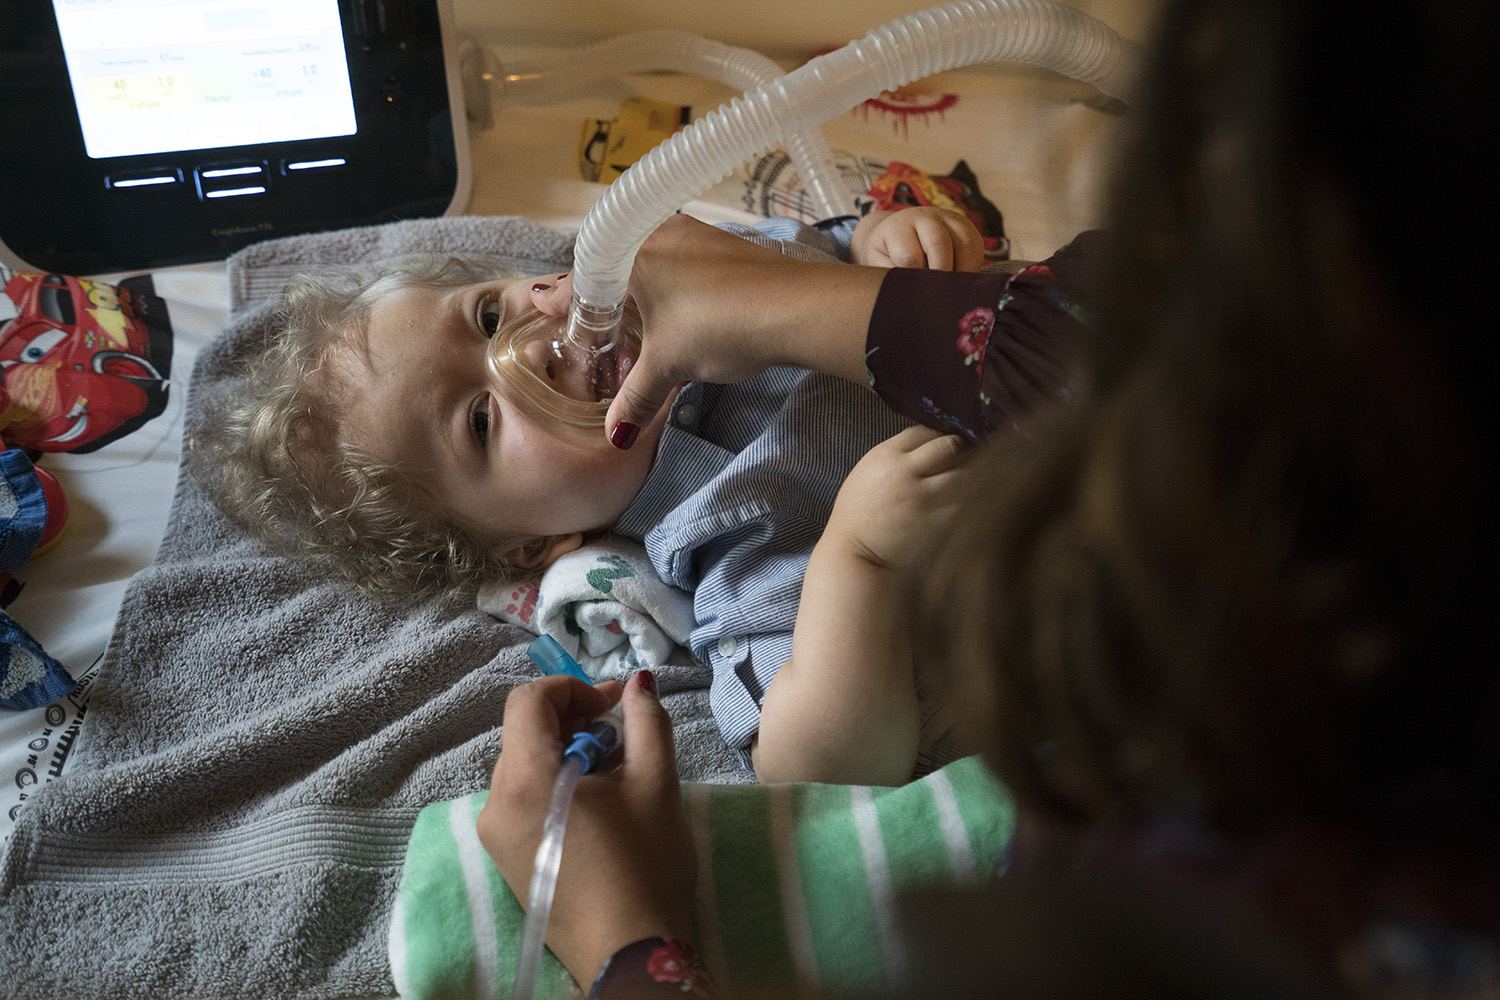 Kristen Resendez uses a suction and cough machine to help her son, Jack, breathe. Spinal muscular atrophy can weaken muscles, making simple tasks like breathing and chewing exhausting.